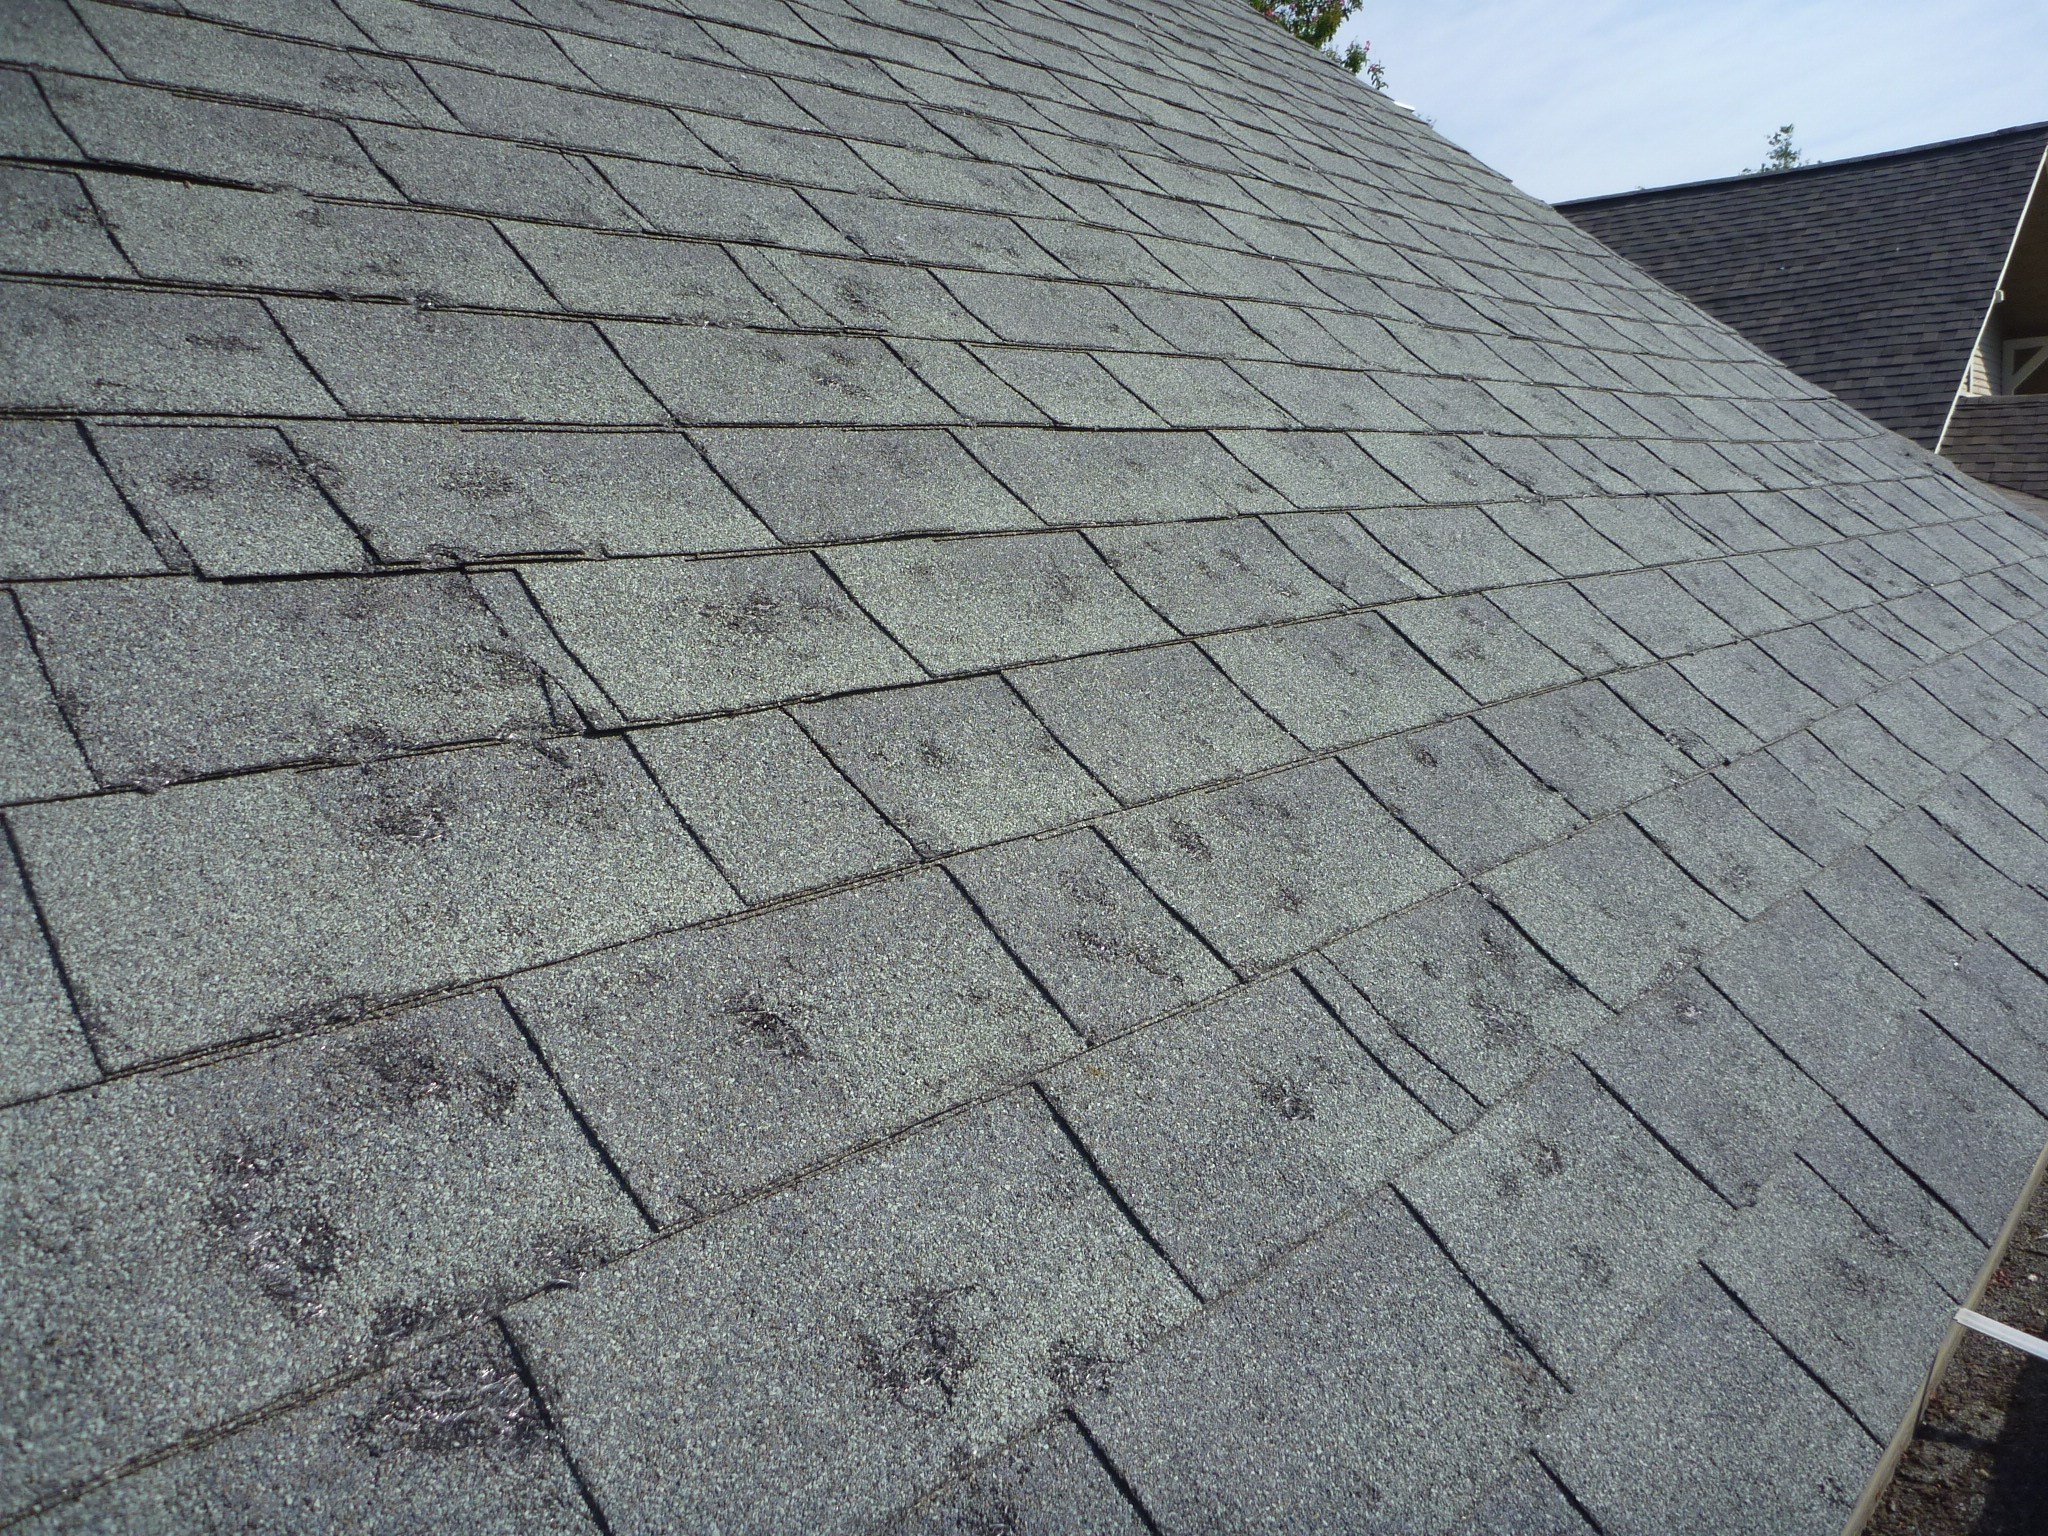 """Hail Damage - Storm damage caused by hail is a serious threat to your roof. Hail damage causes small indentations and holes in your roofs shingles. Once a roof has been damaged by hail, it is not repairable, and there is no such thing as """"a little hail damage"""". If your home gets hail damage you can call Bermudx Roofing Of Spring Texas for a free roof evaluation/inspection and we'll show you the extent of the damage and if necessary guide you through the process of a roof replacement whether its out of pocket or through the insurance."""